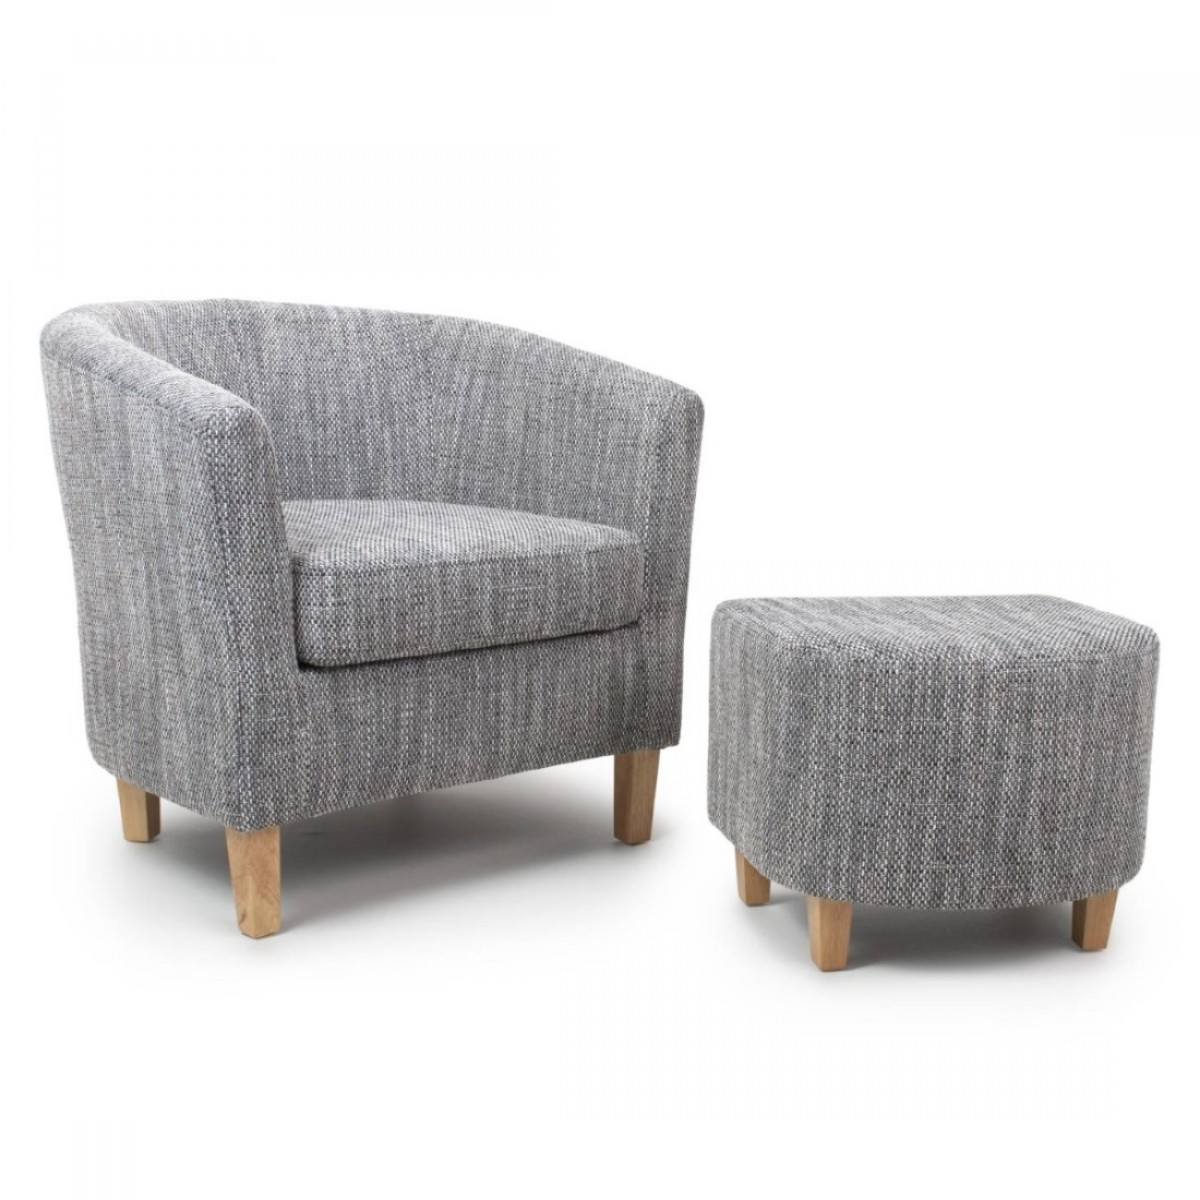 Tub Chairs Armchair Shankar Grey Tweed Tub Chair And Stool Set 057 03 41 05 01